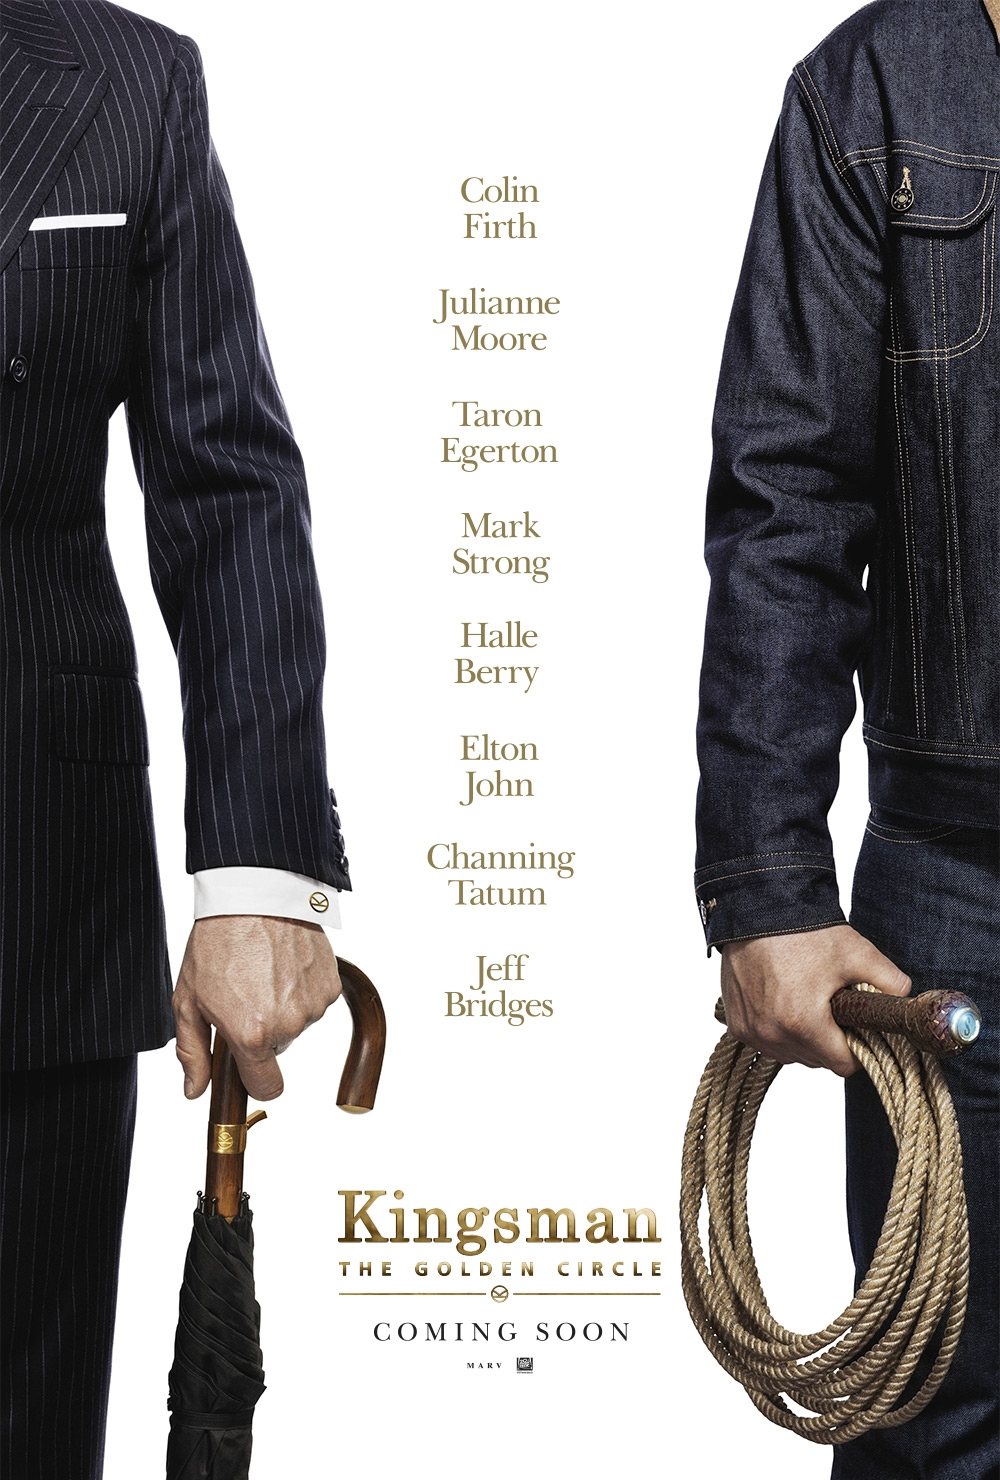 kingsman-the-gloden-circle-one-sheet.jpg